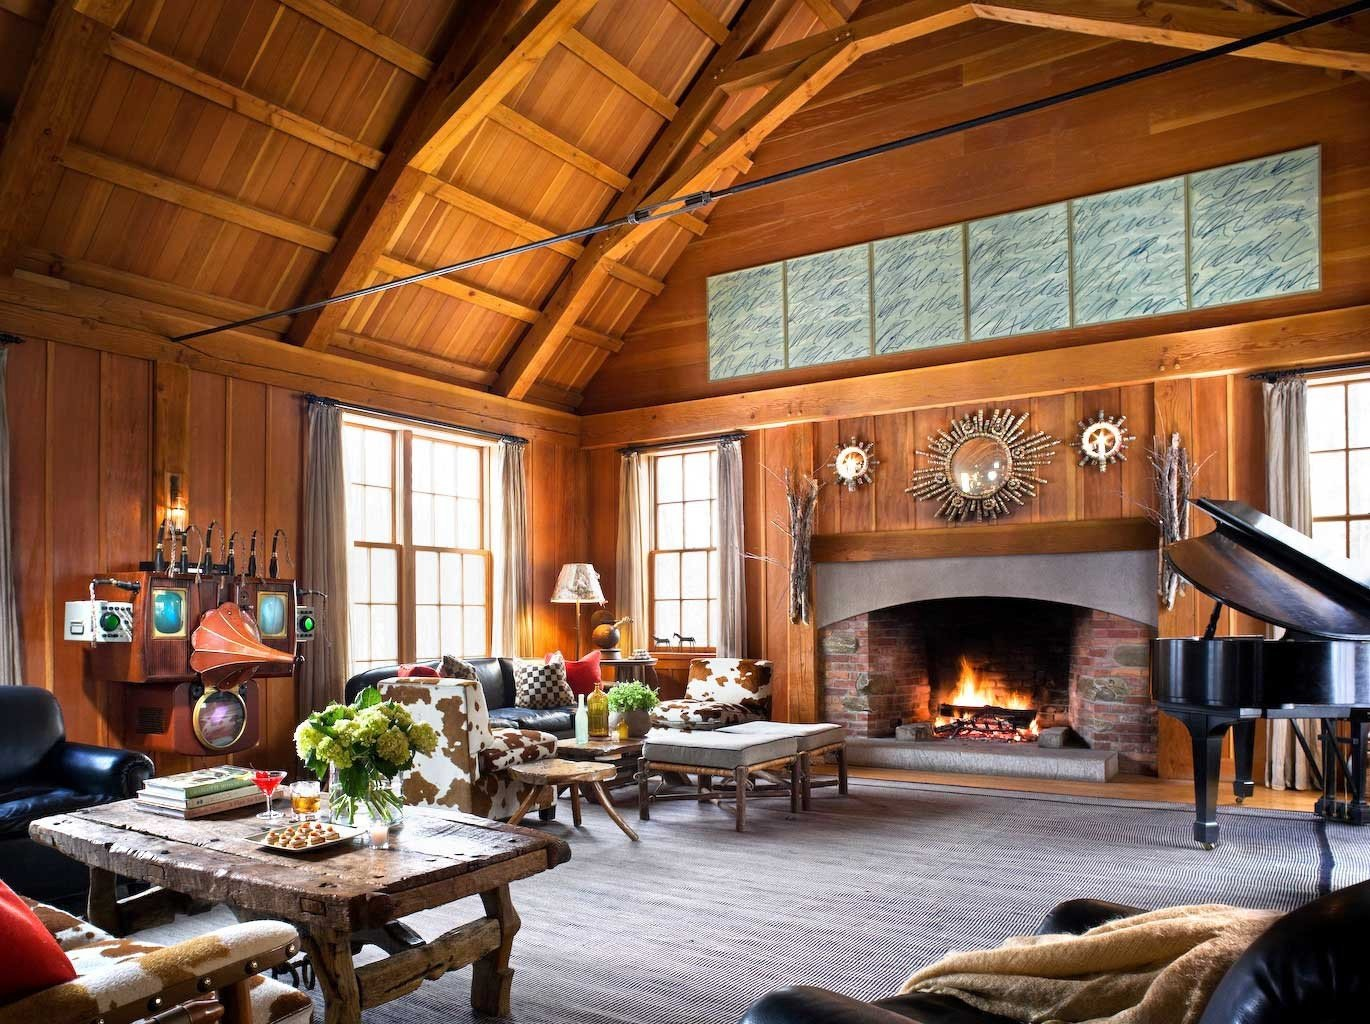 Hotels indoor Living room Fireplace ceiling fire building property living room estate home interior design wood log cabin cottage real estate furniture farmhouse recreation room area stone